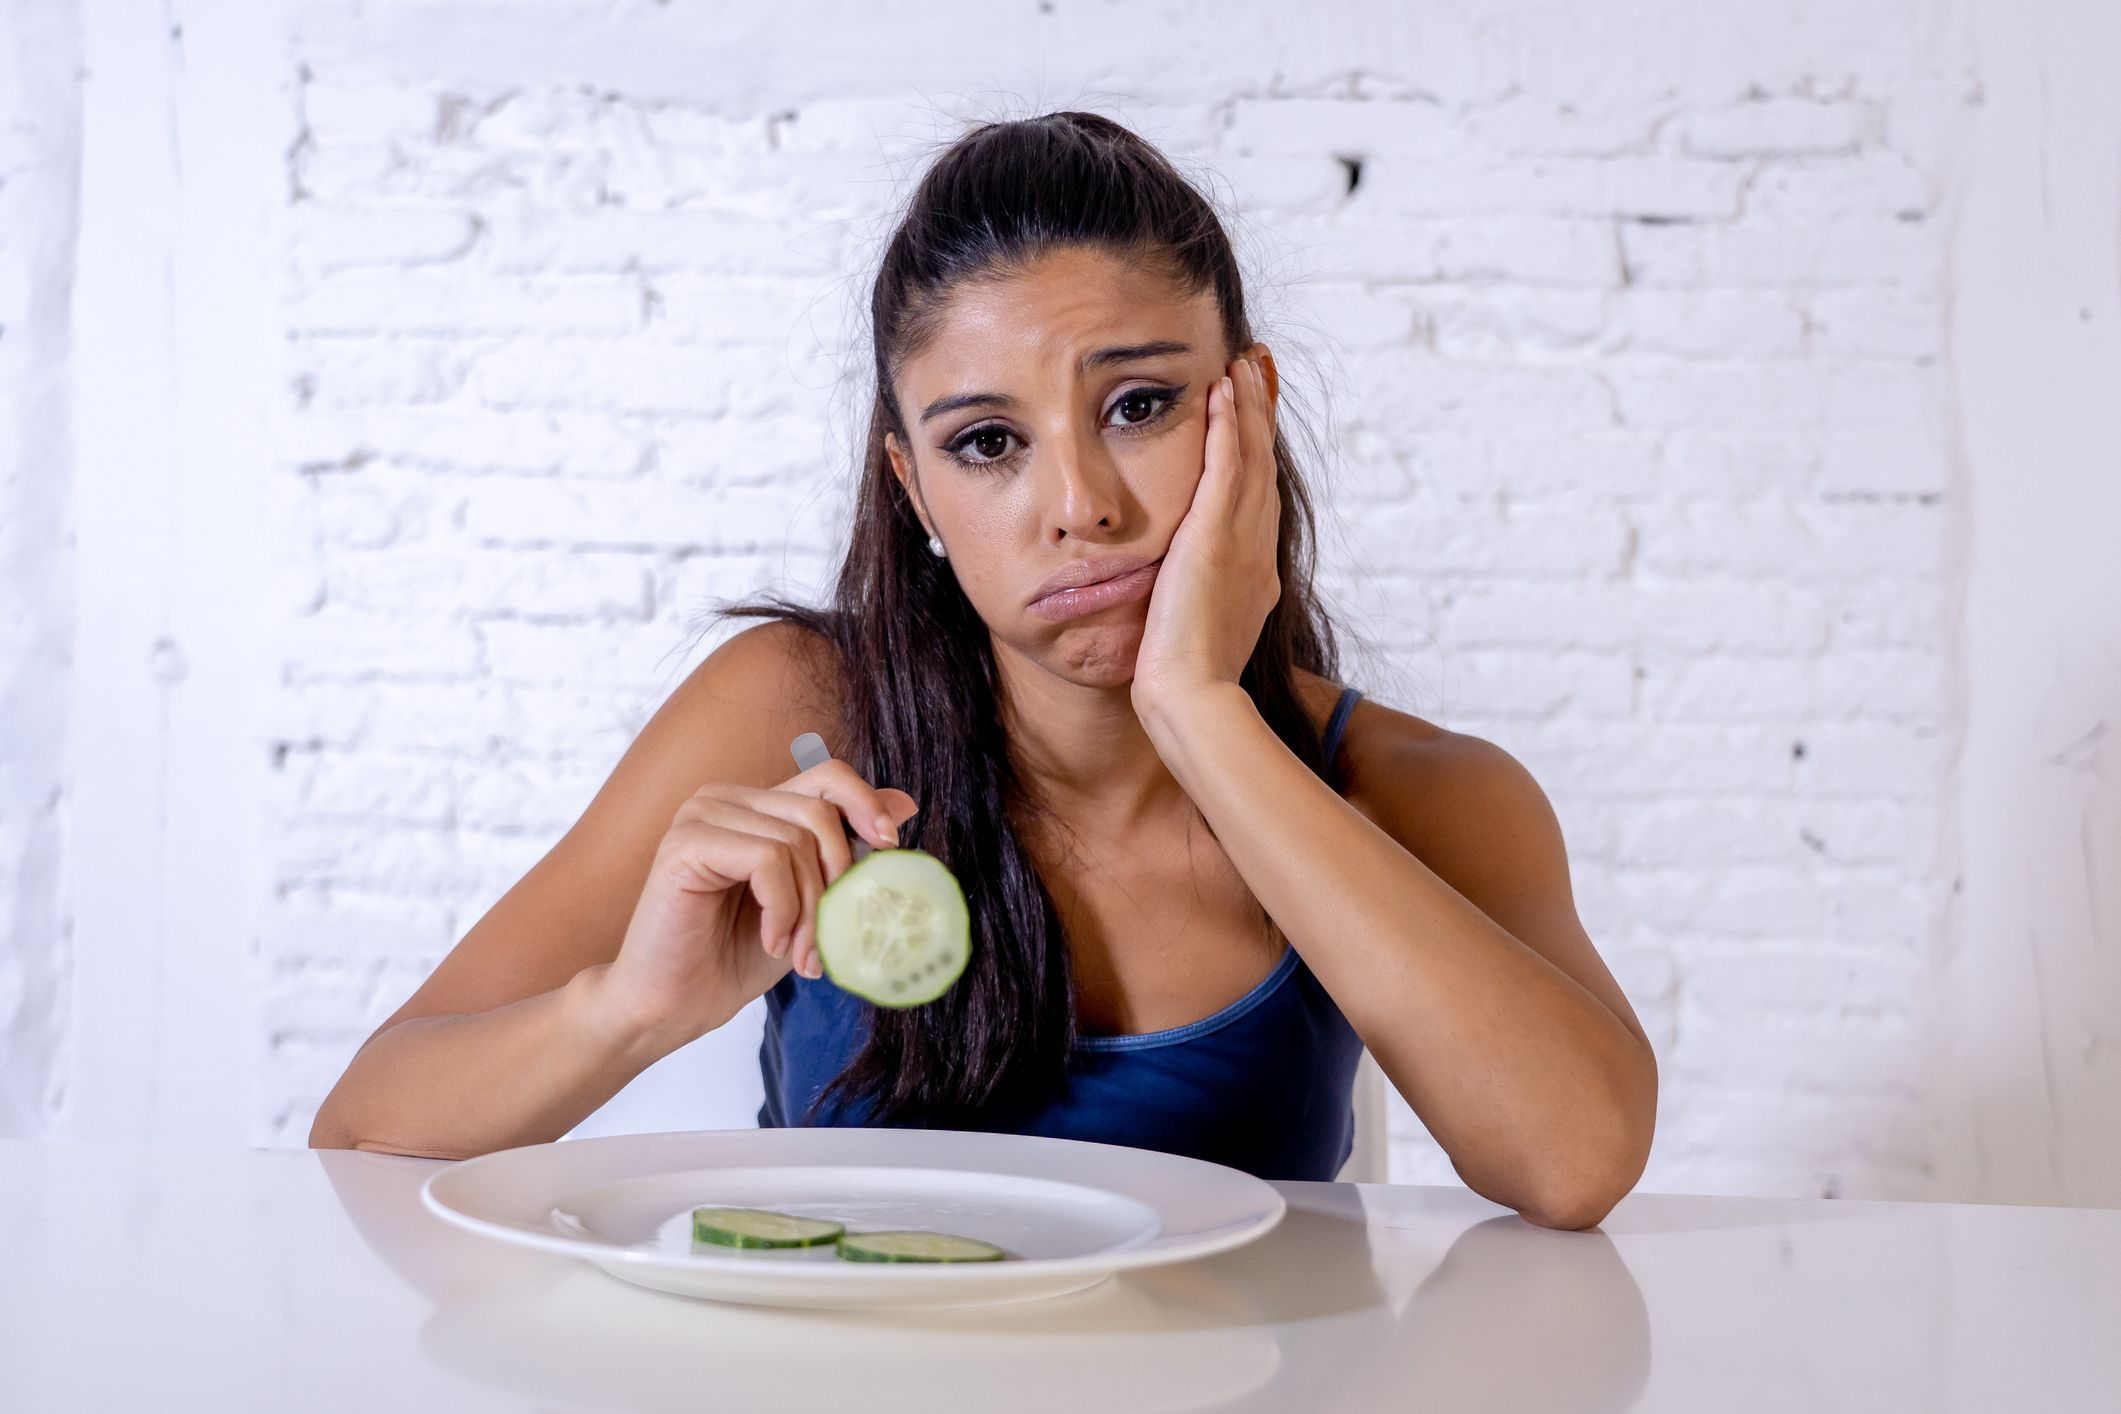 Loss of appetite: what to do if you're just not hungry